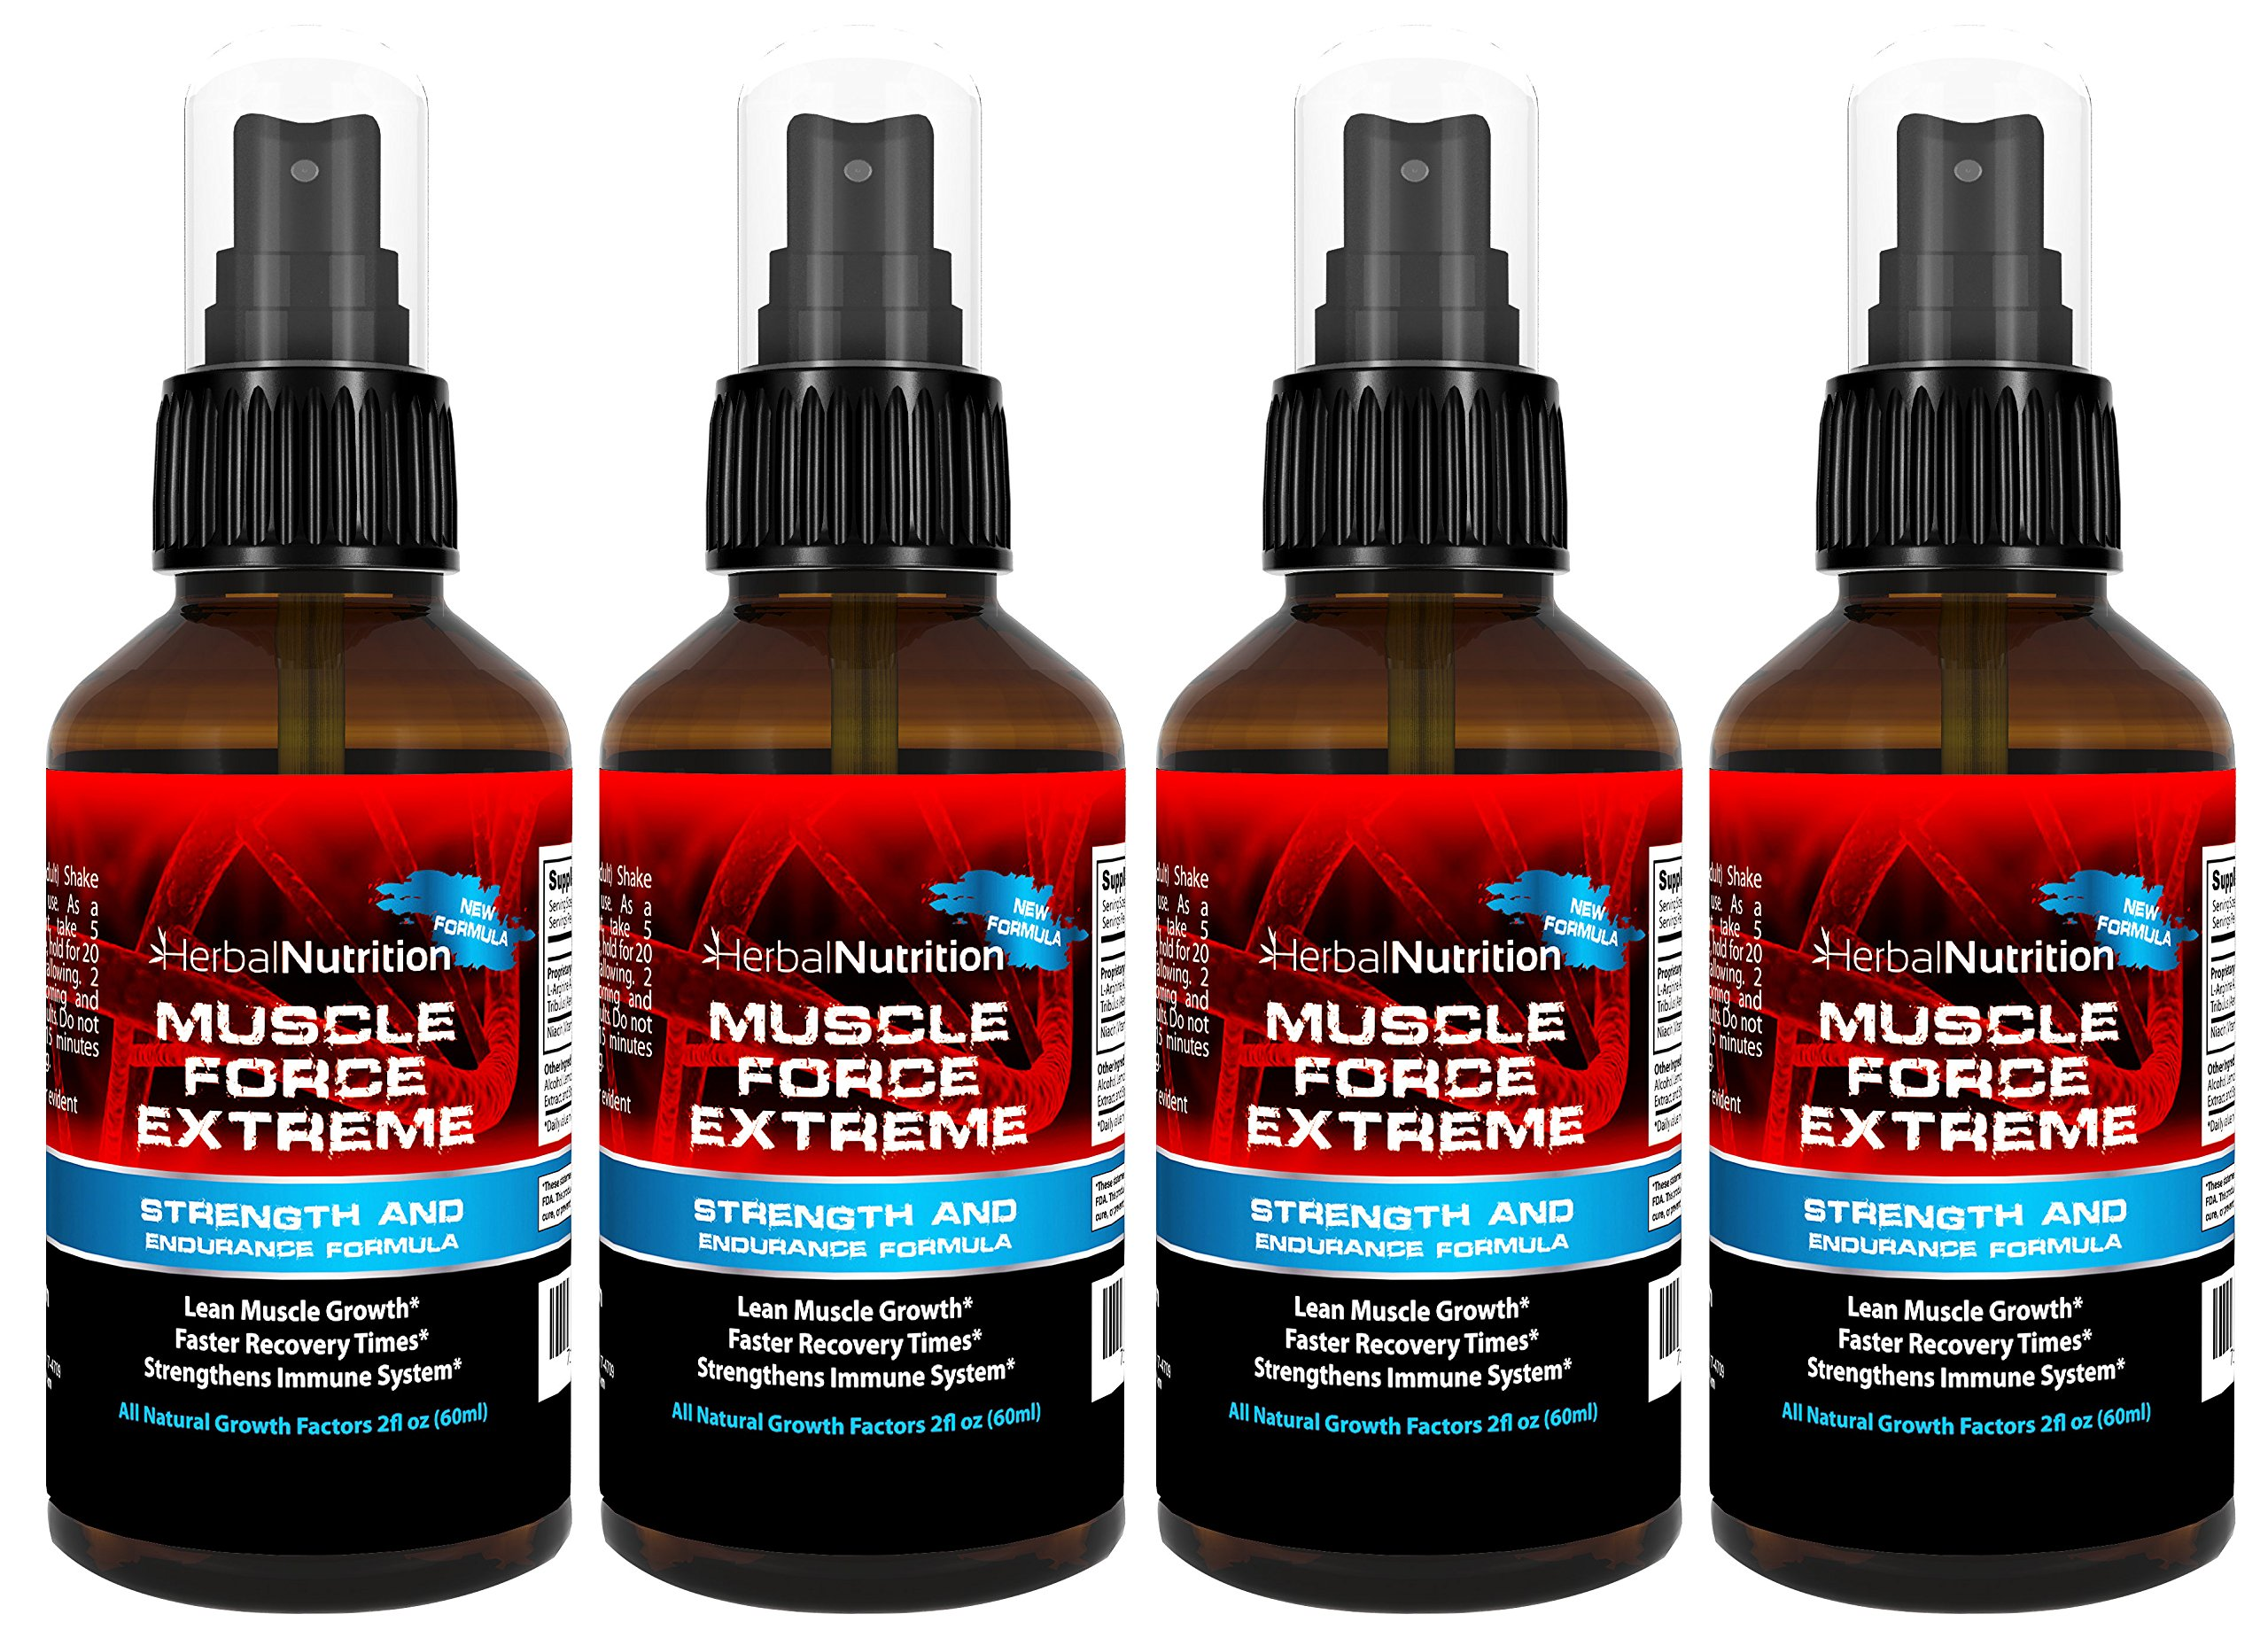 #1 Rated MUSCLE FORCE EXTREME! | Four Bottle Pack | 400mg Proprietary Formula | Our Strongest Strength and Endurance Spray! | Improve Strength and Recovery | Four 2oz Spray Bottles | Free Shipping